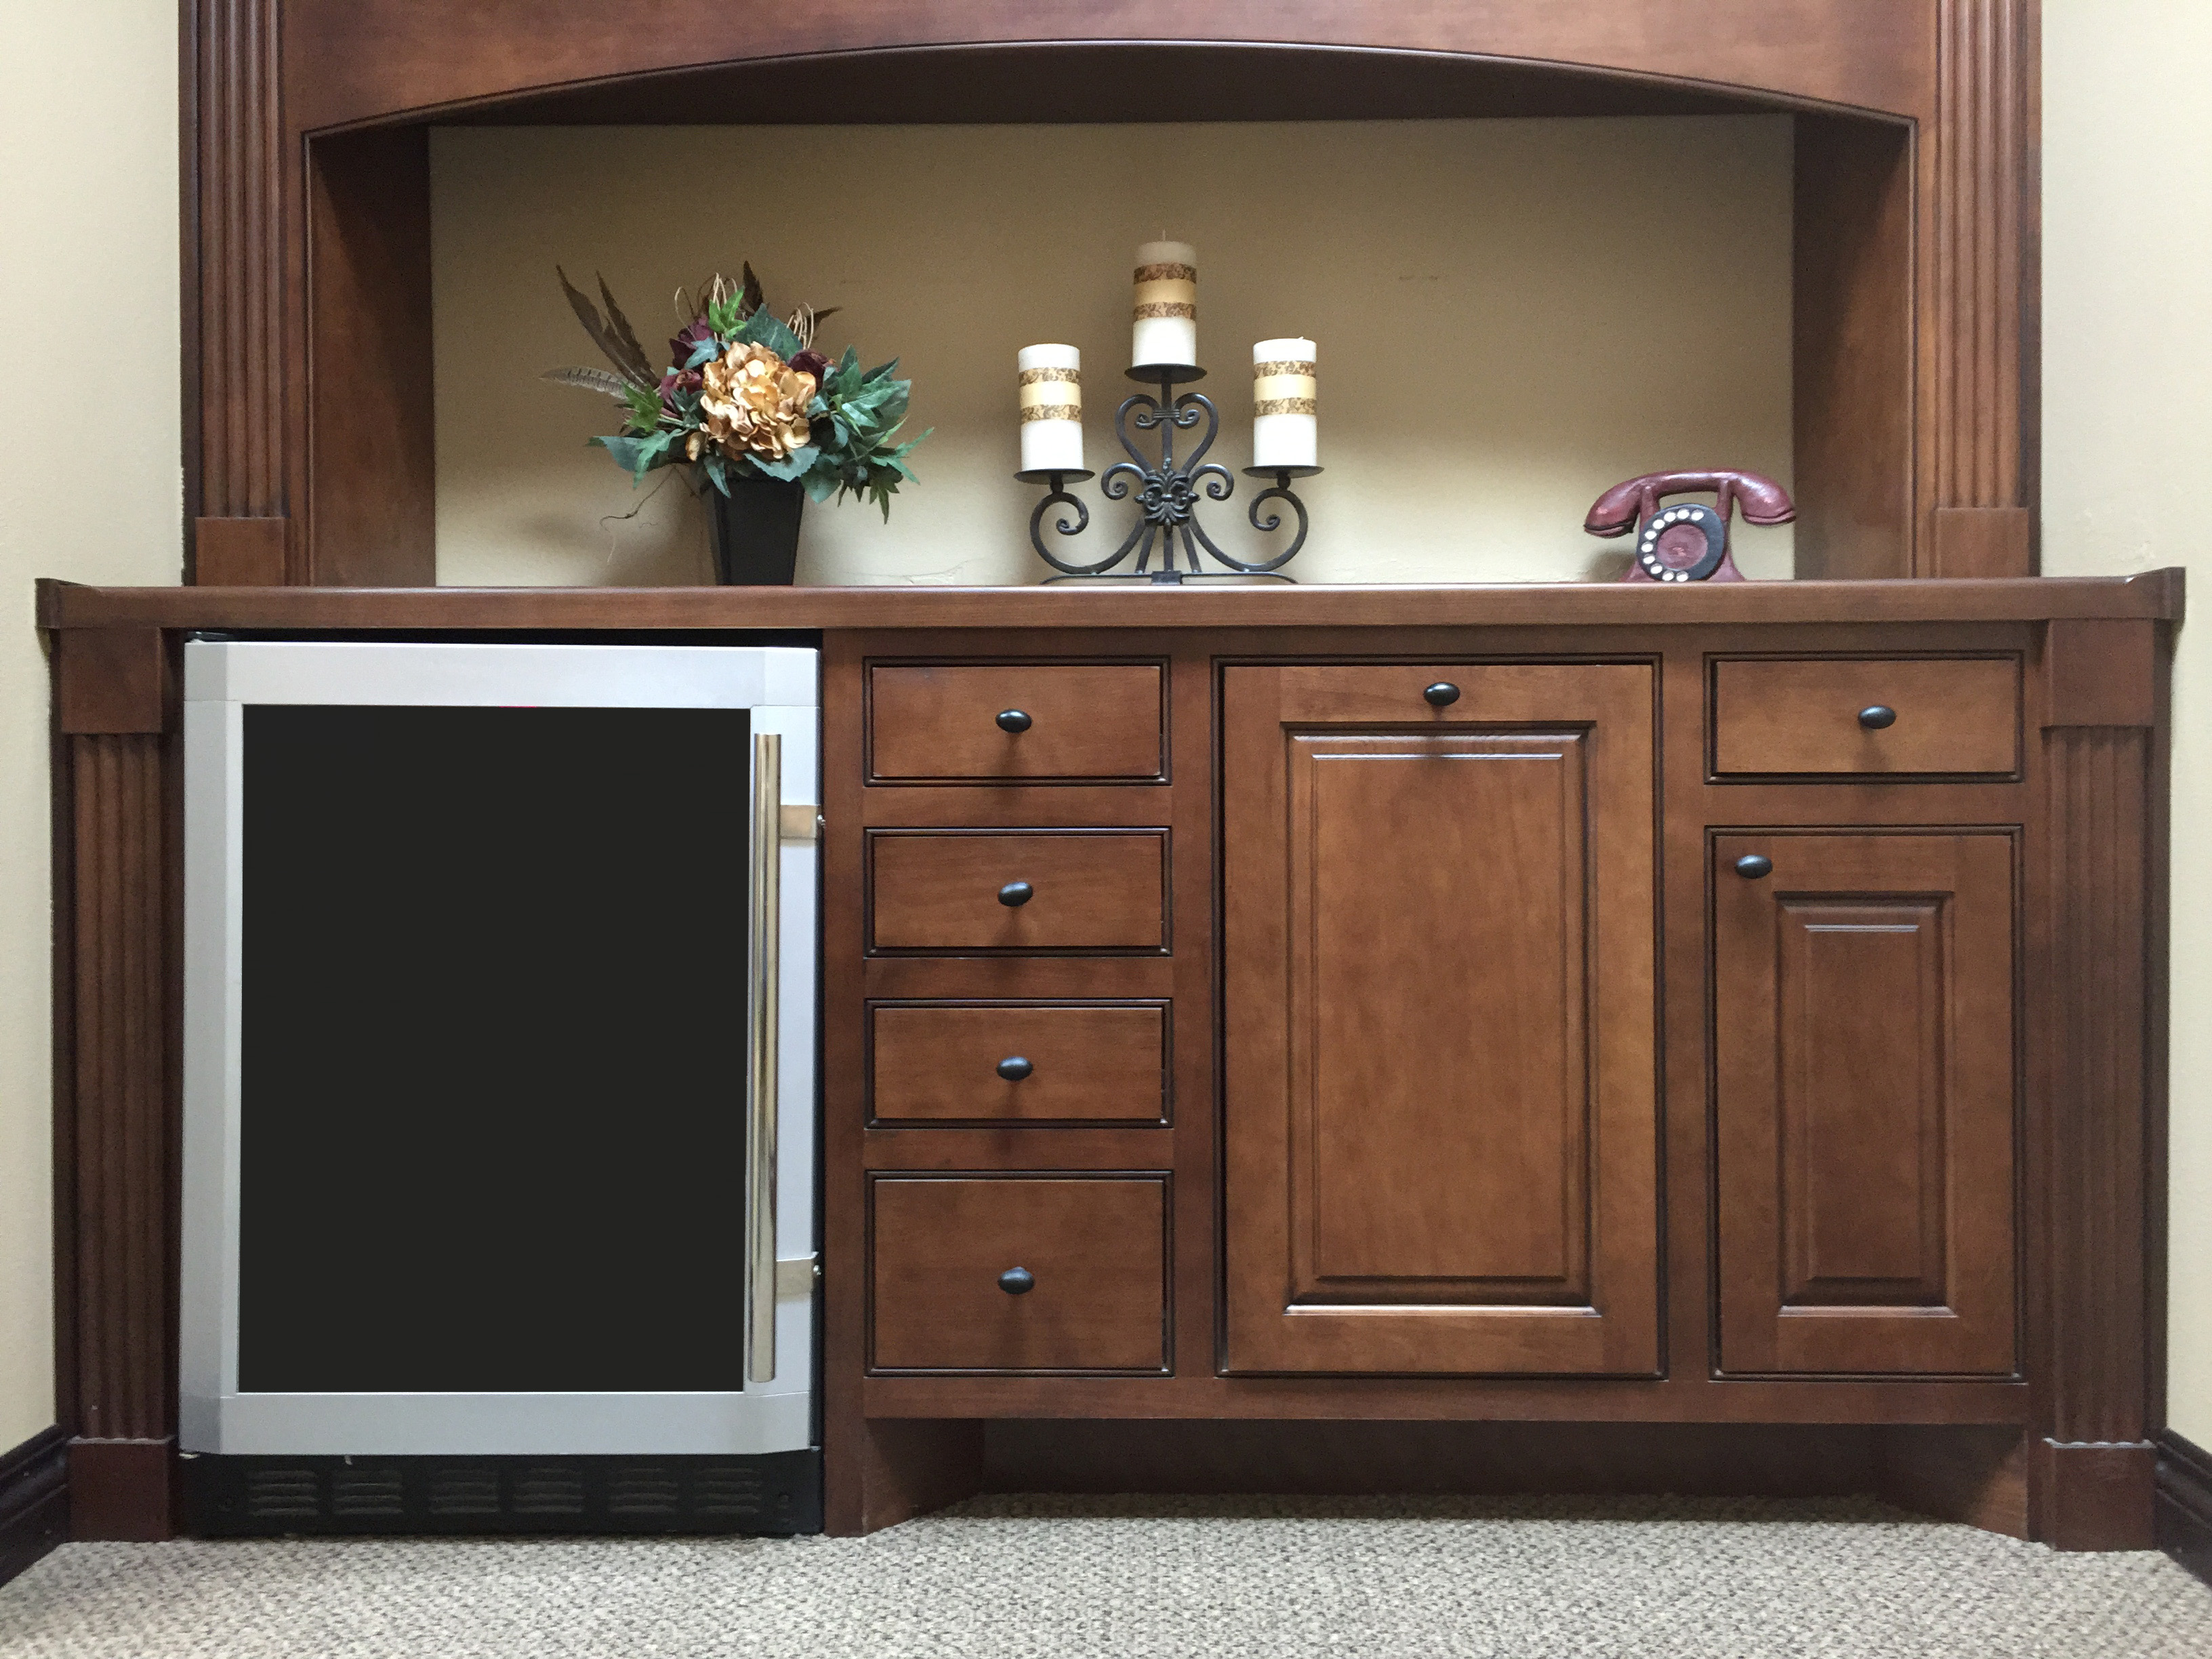 cabinet with flush inset cabinet doors and drawer fronts